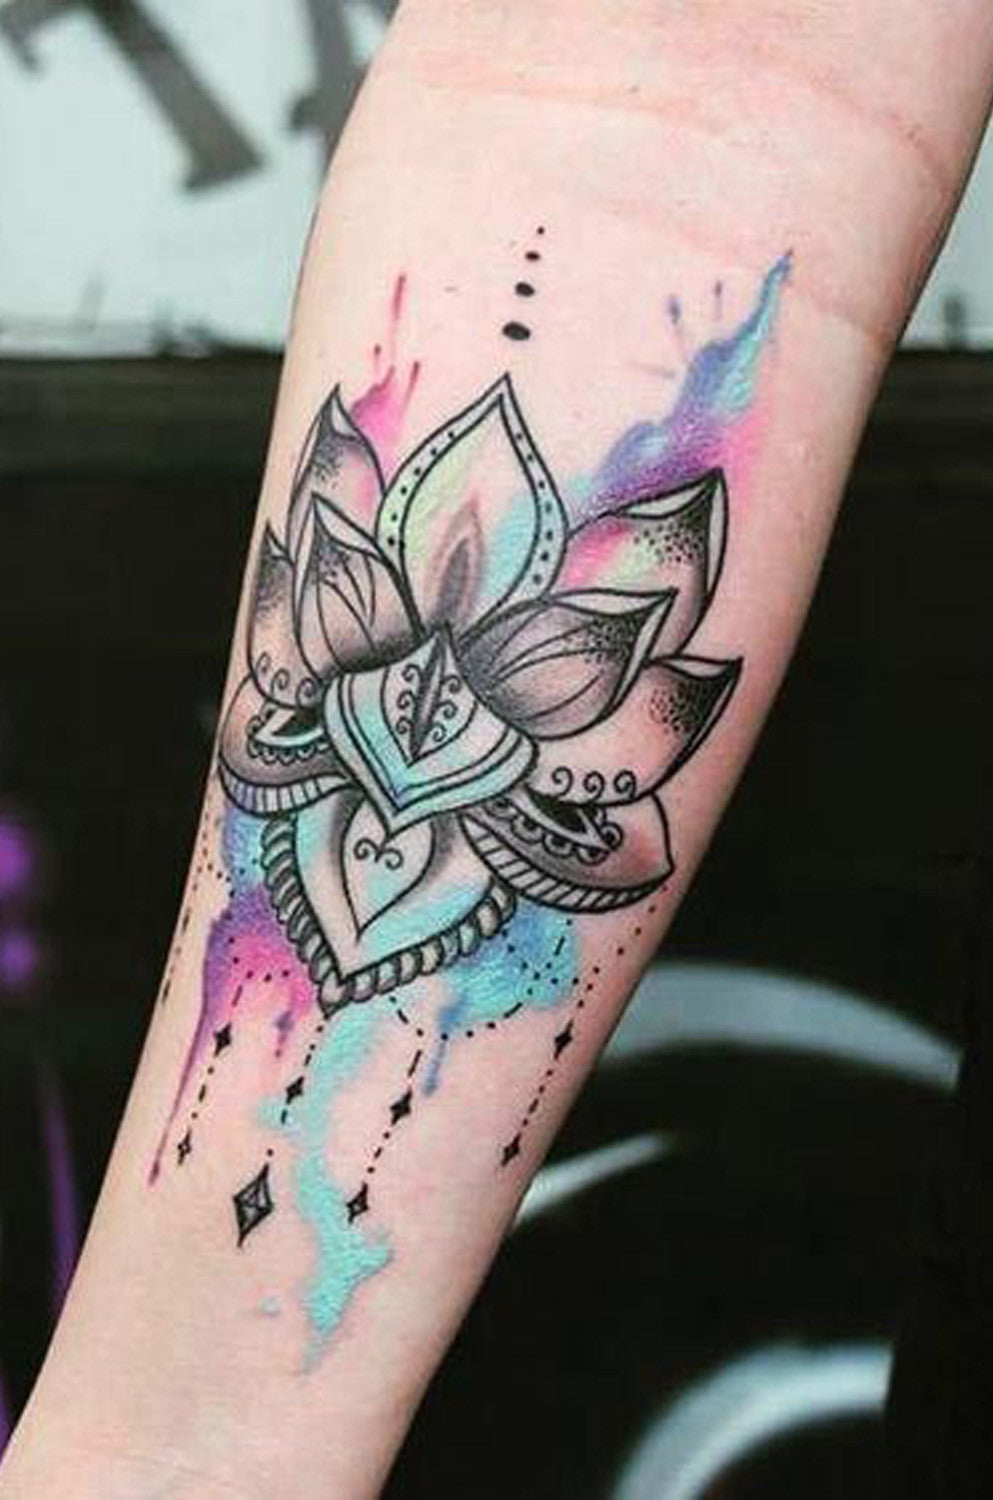 100 most popular lotus tattoos ideas for women mybodiart for Women tattoos ideas